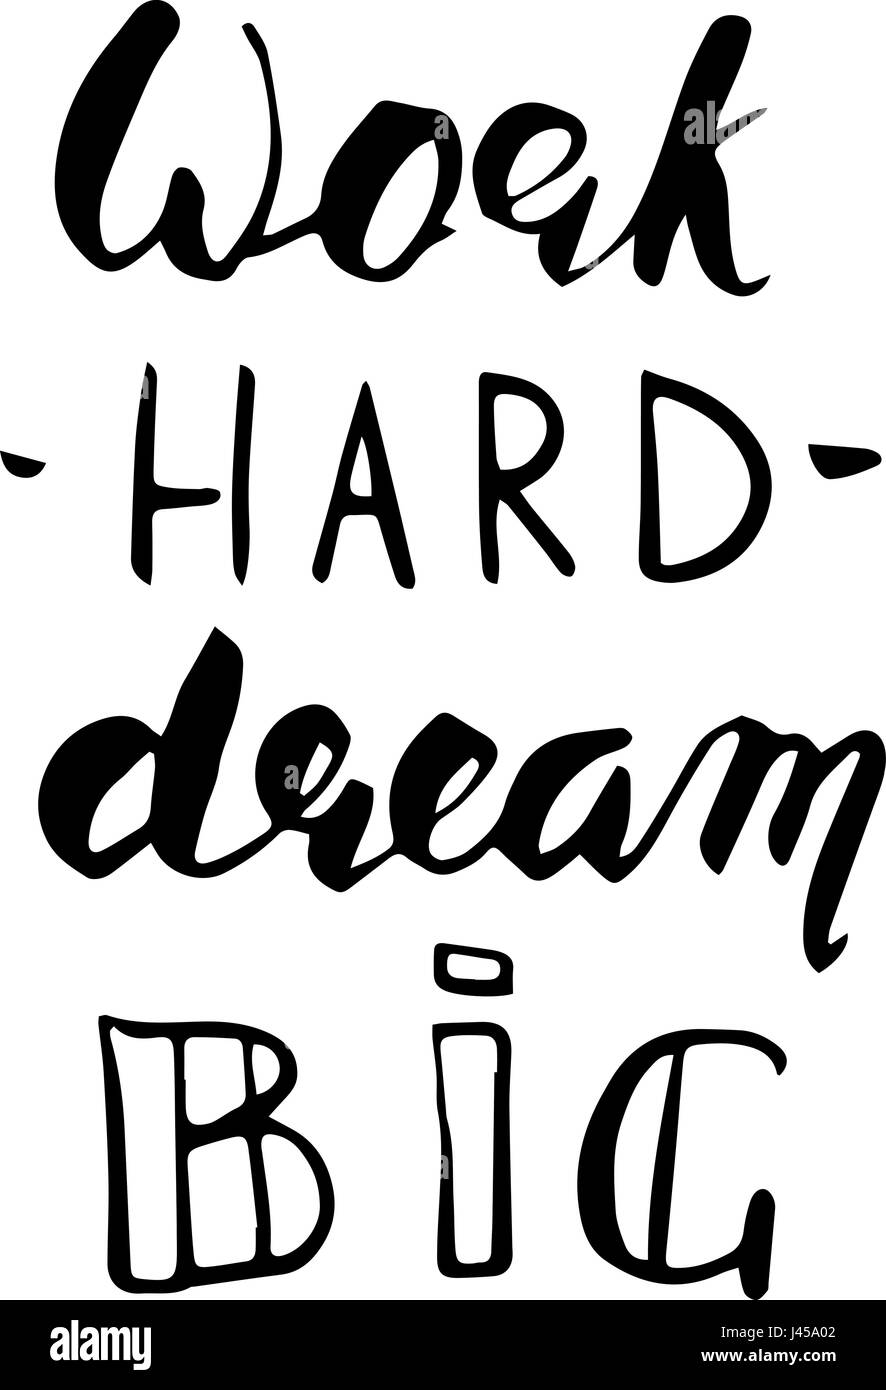 Work Hard Dream Big Lettering. Motivational Quote Isolated Black Letters On  White. Modern Brush Calligraphy Style.